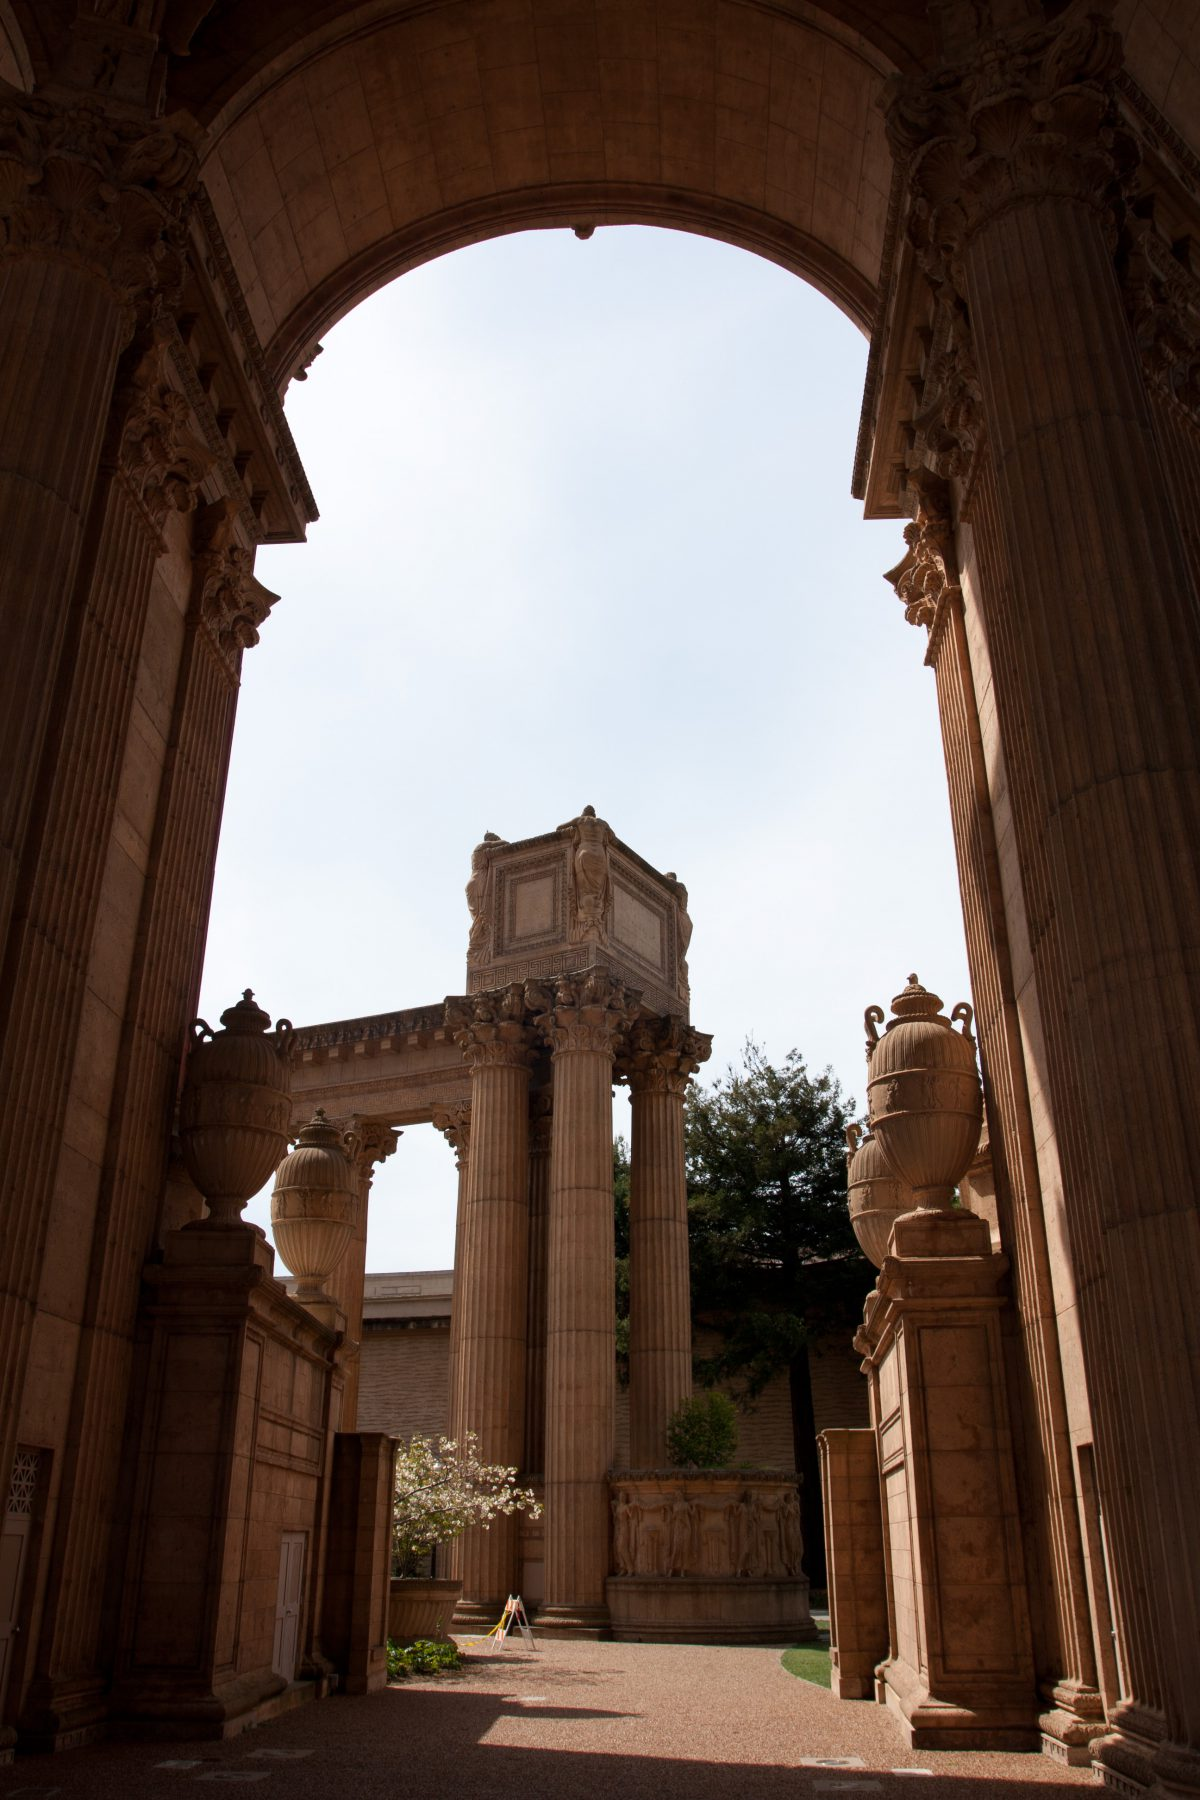 Palace of Fine Arts Theater, building